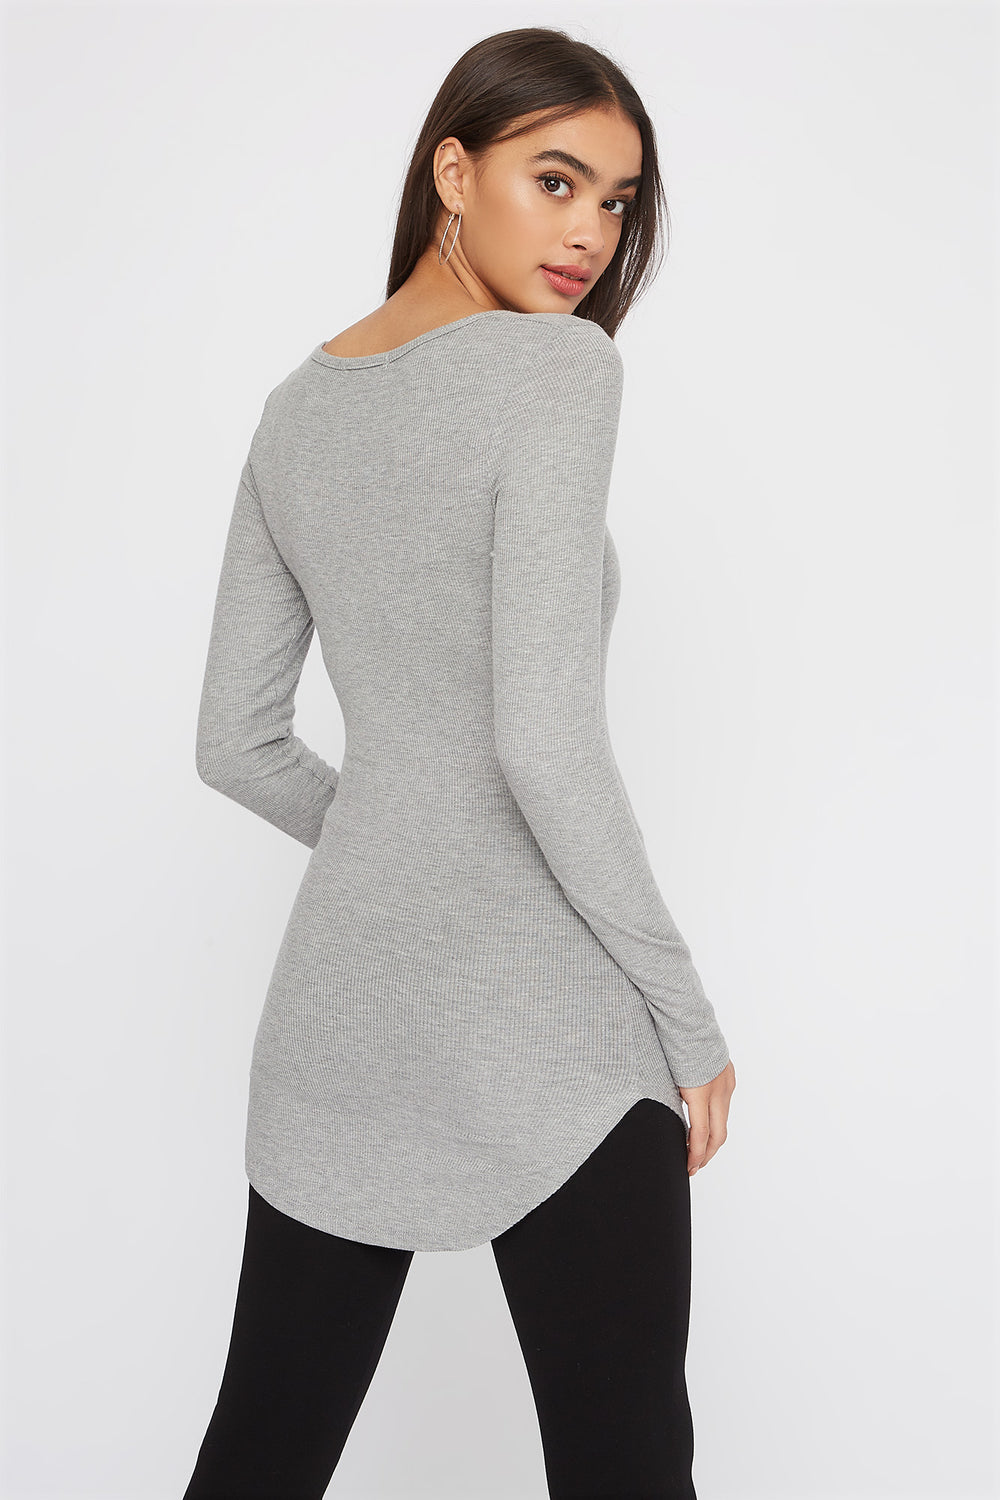 Longline Crew Neck Long Sleeve Heather Grey